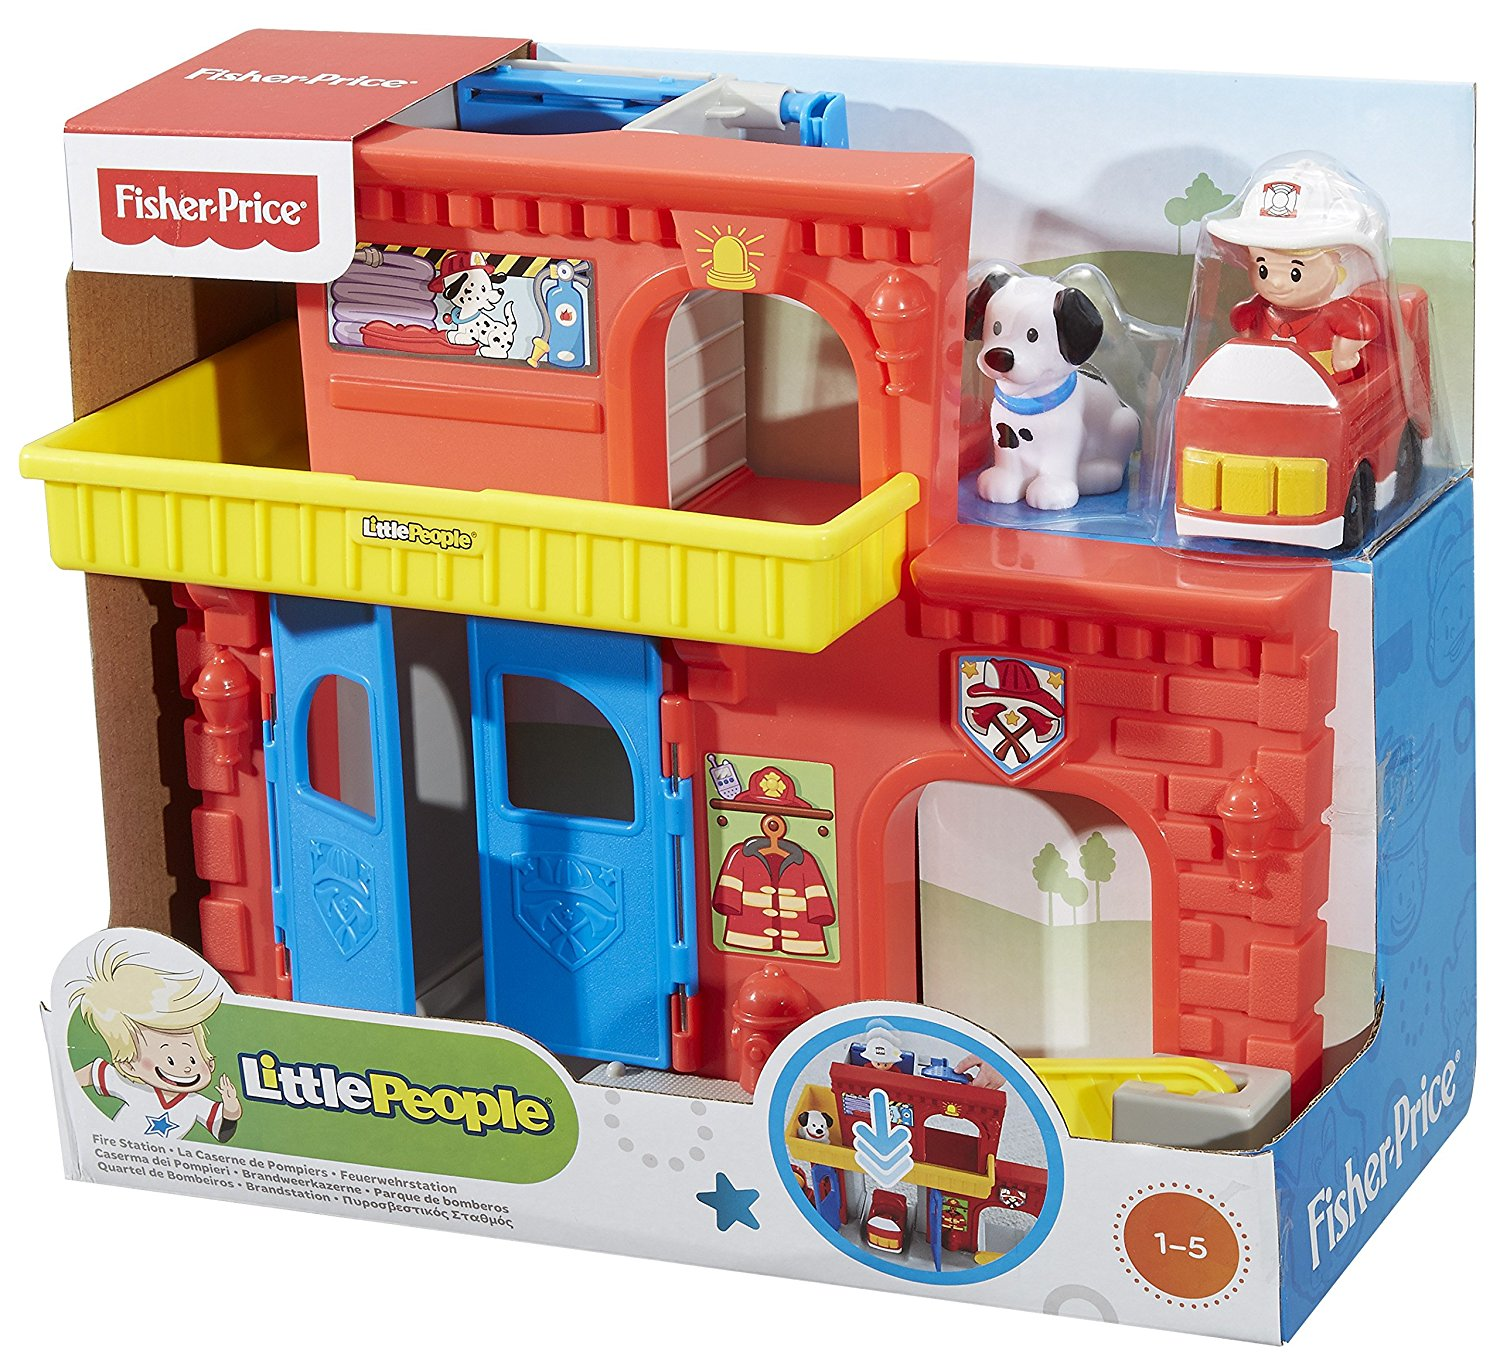 Fisher-Price Little People Wheelies Fire Station, Turn ha...